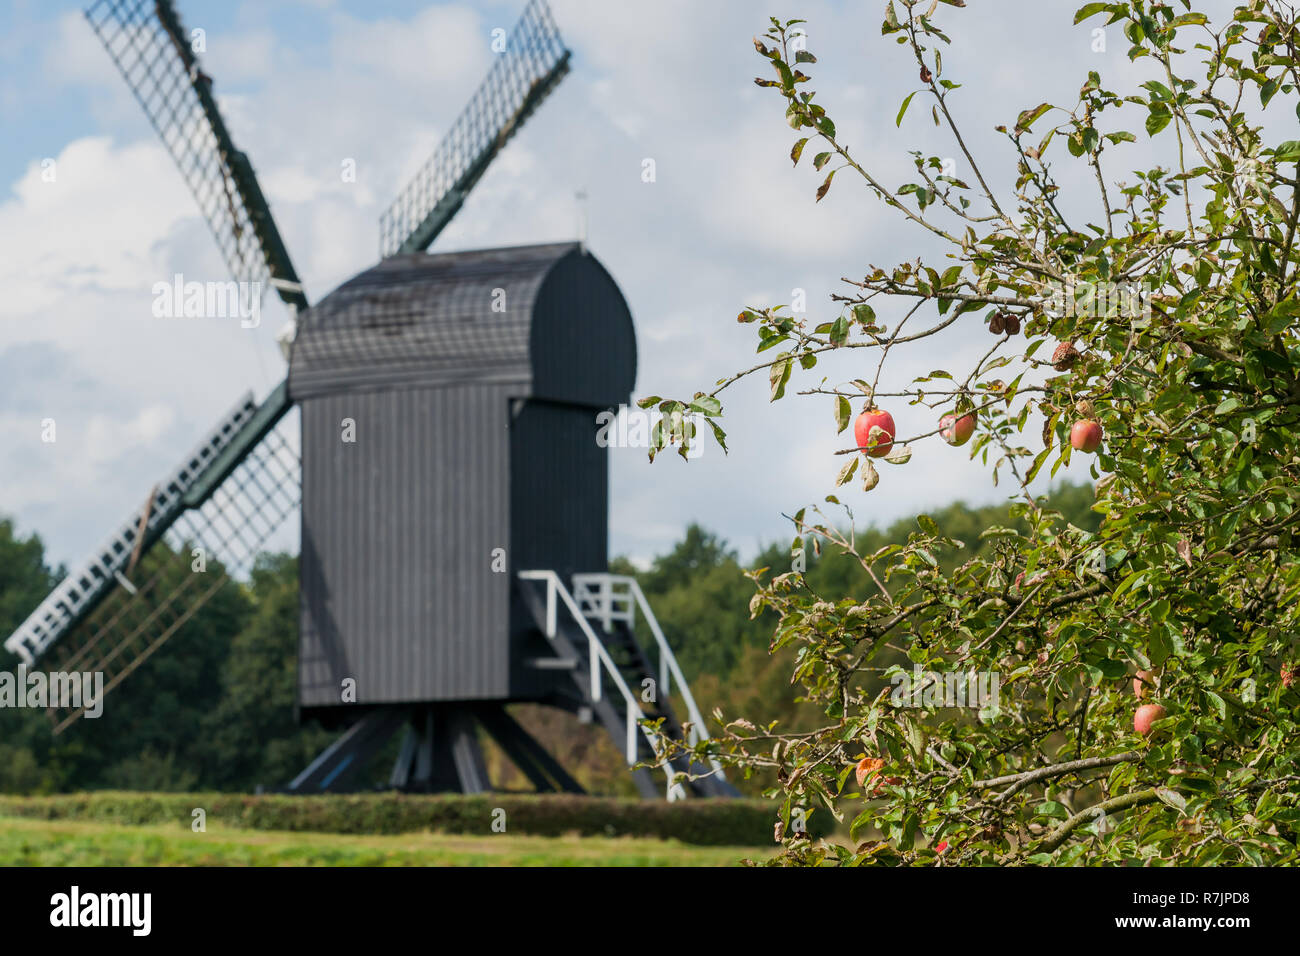 Old windmill in the renovated historic fortress town of Bourtange in Groningen, the Netherlands. - Stock Image